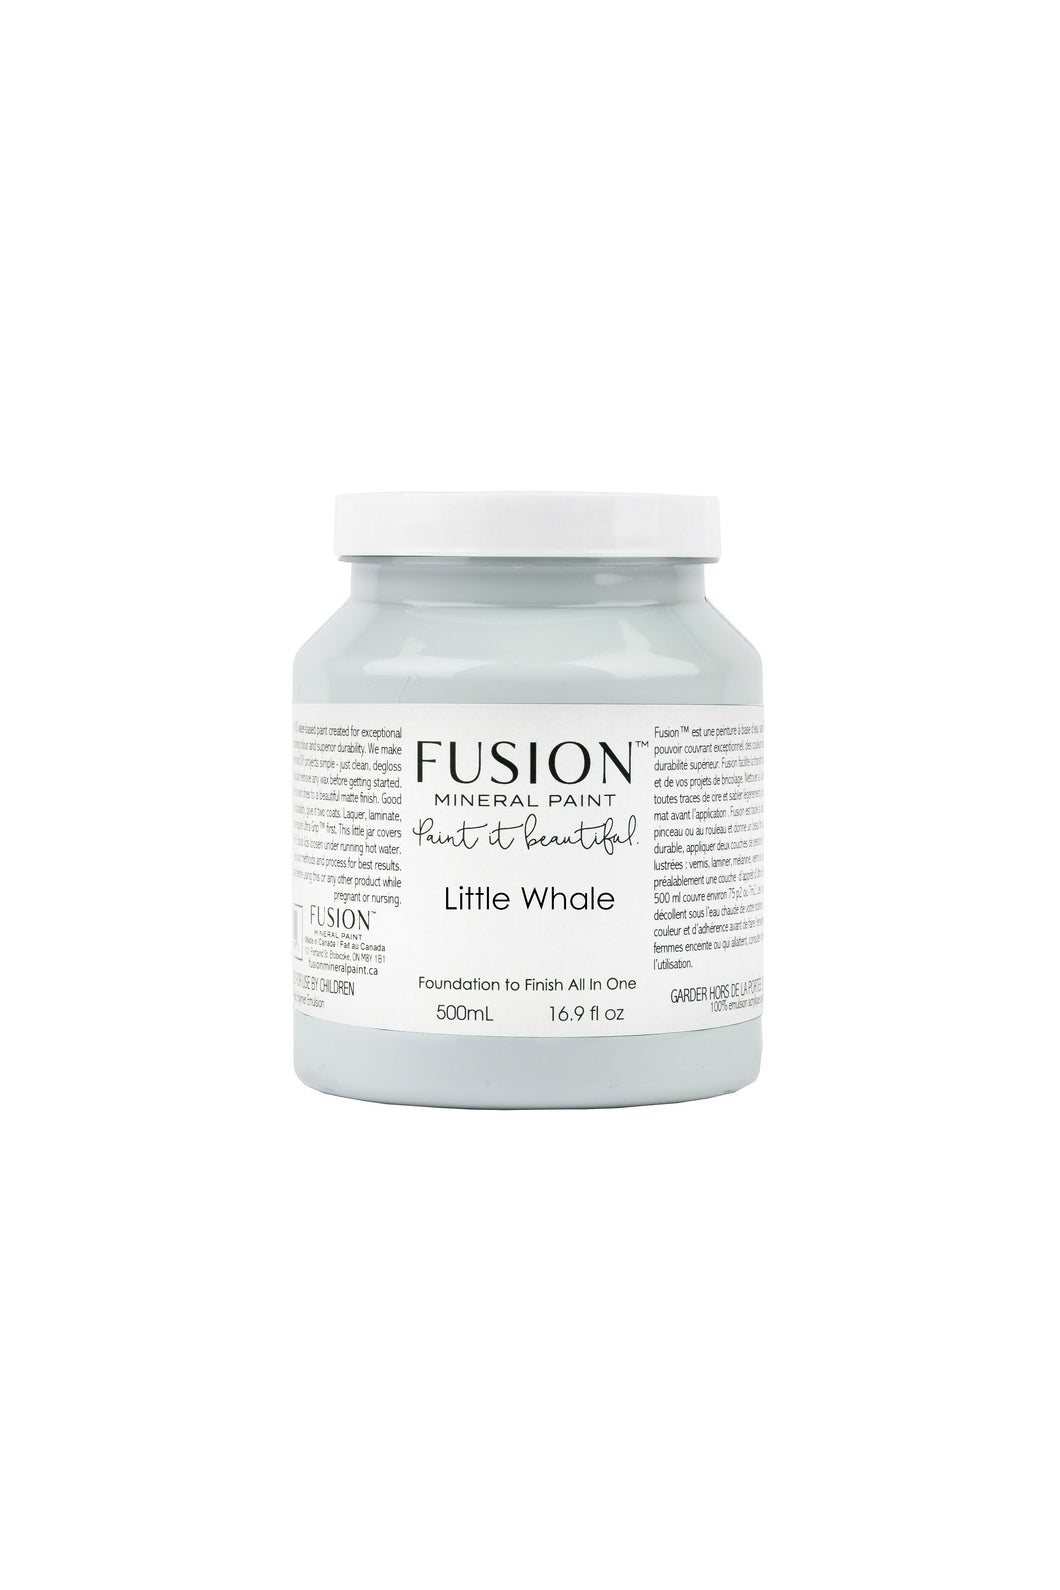 Fusion Mineral Paint - Little Whale   $40.00